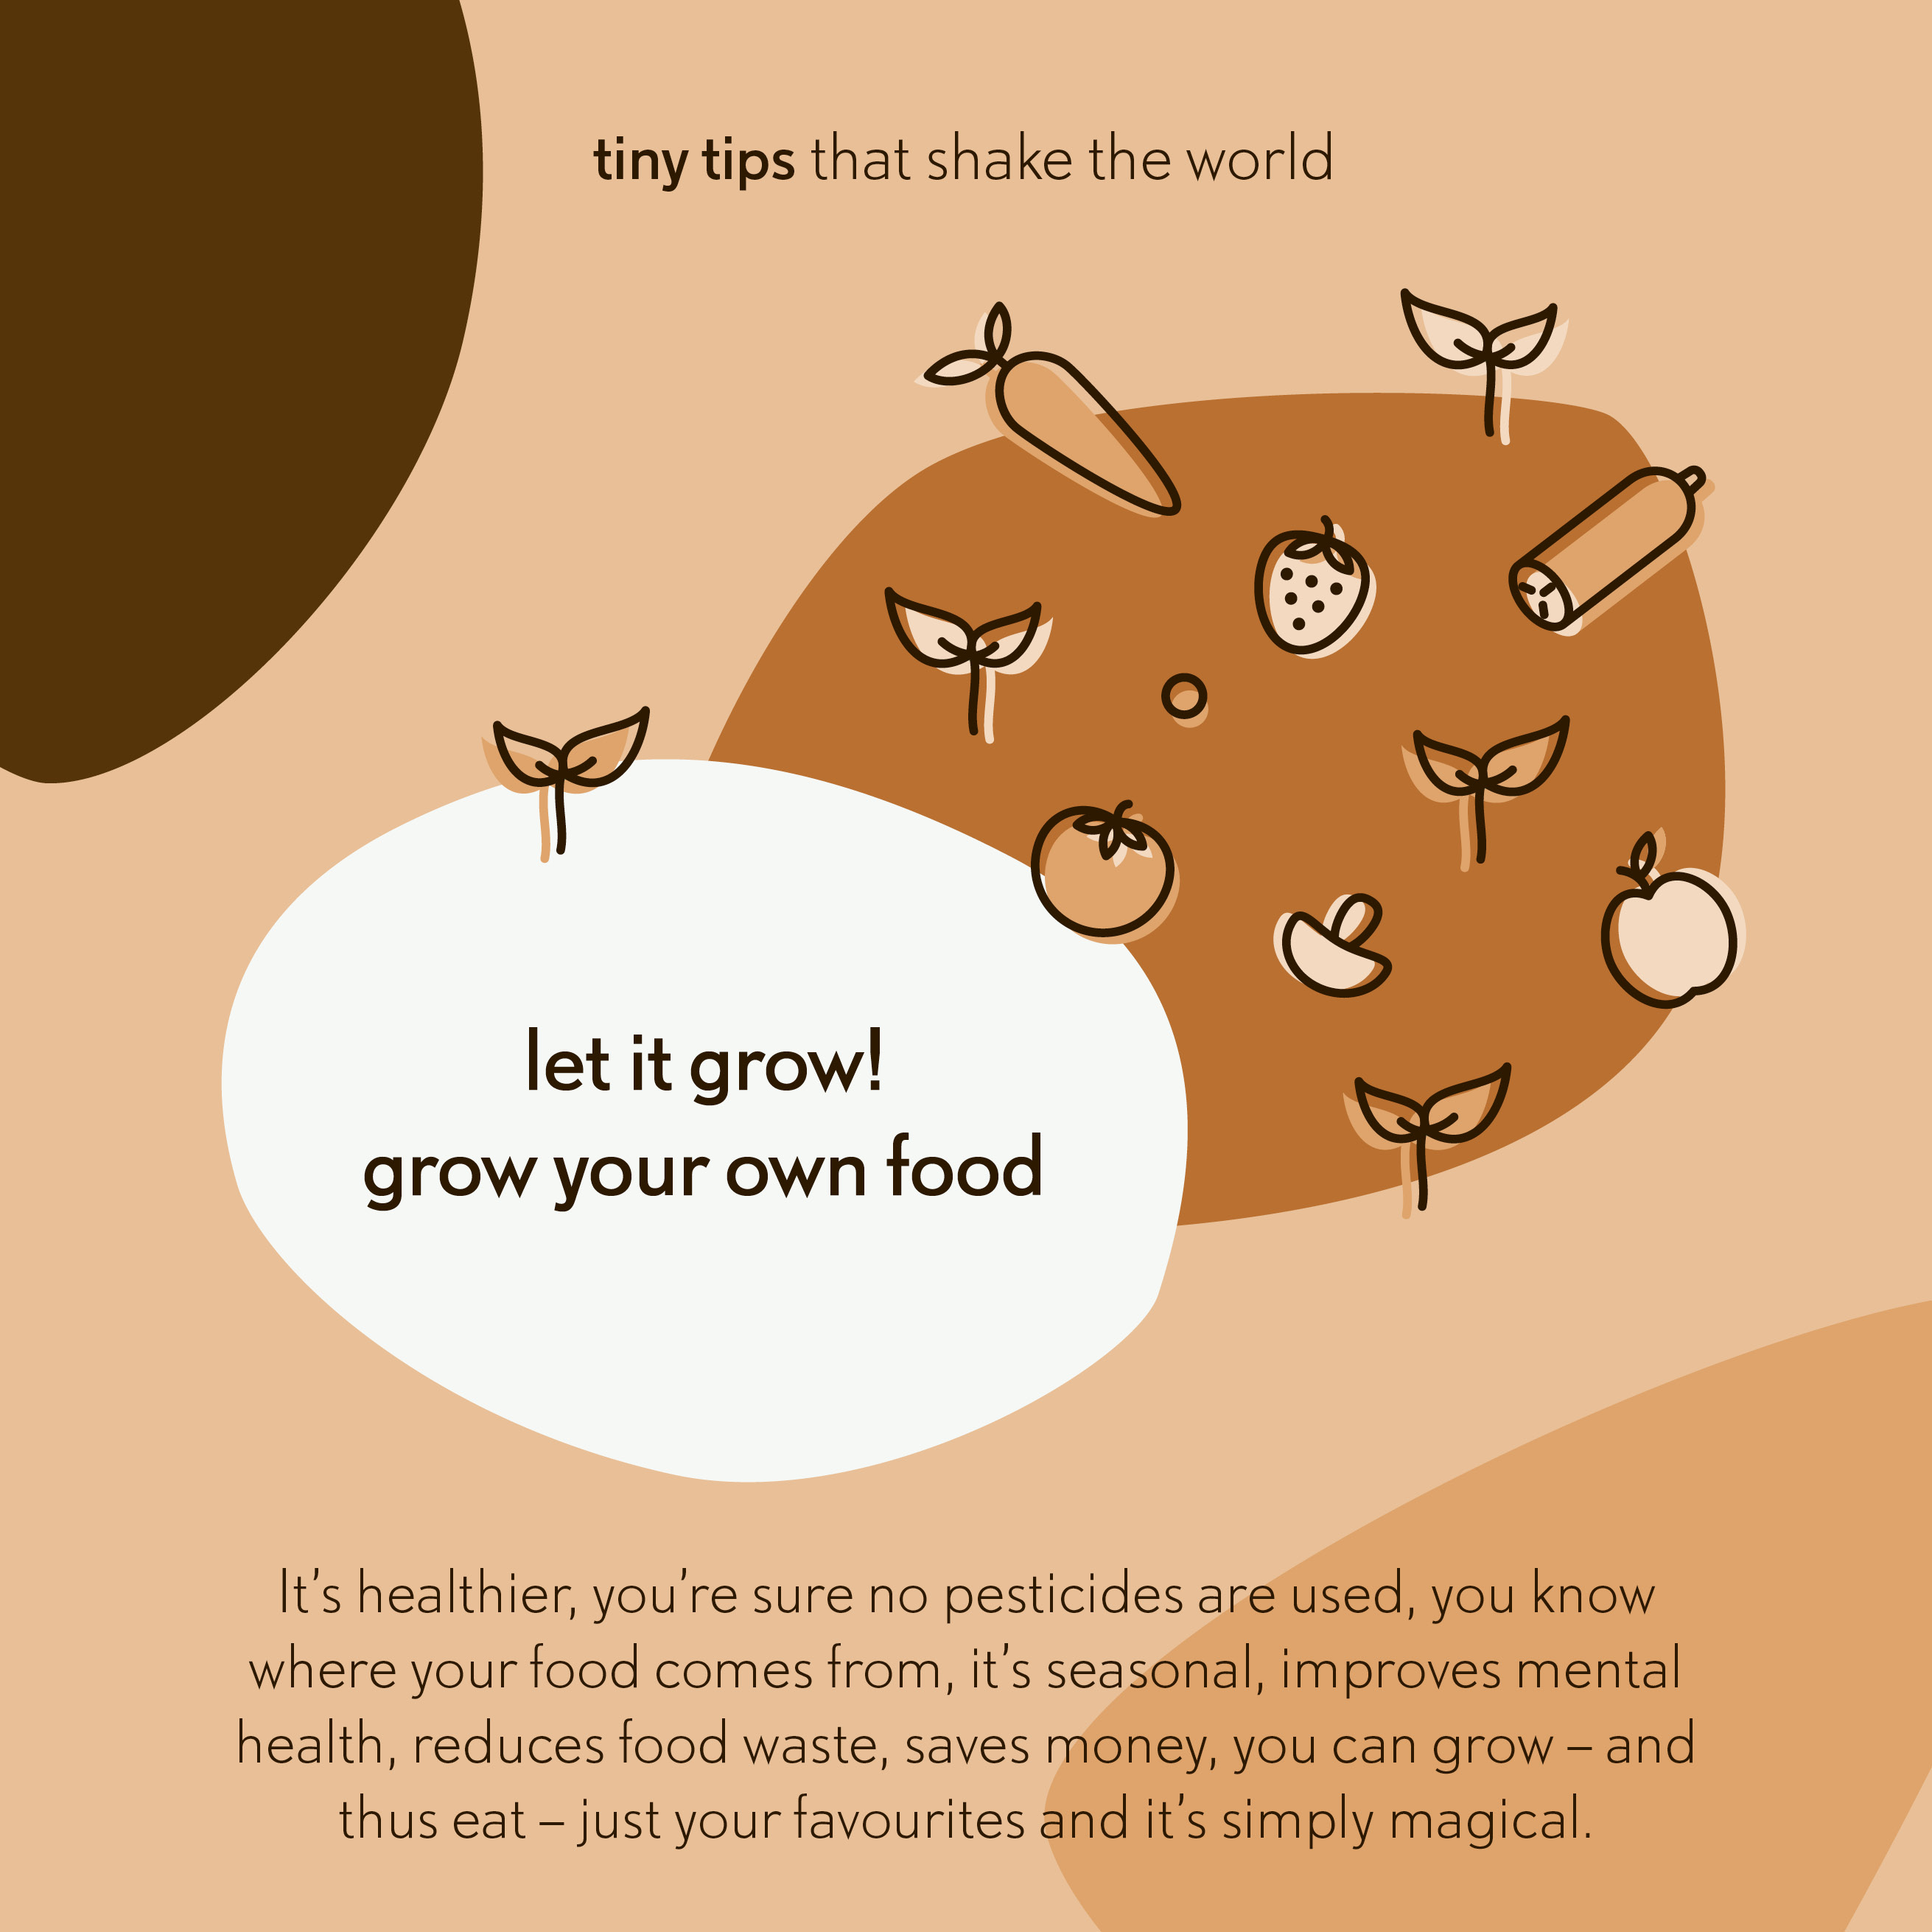 Let it grow! Grow your own food - Tiny tips that shake the world